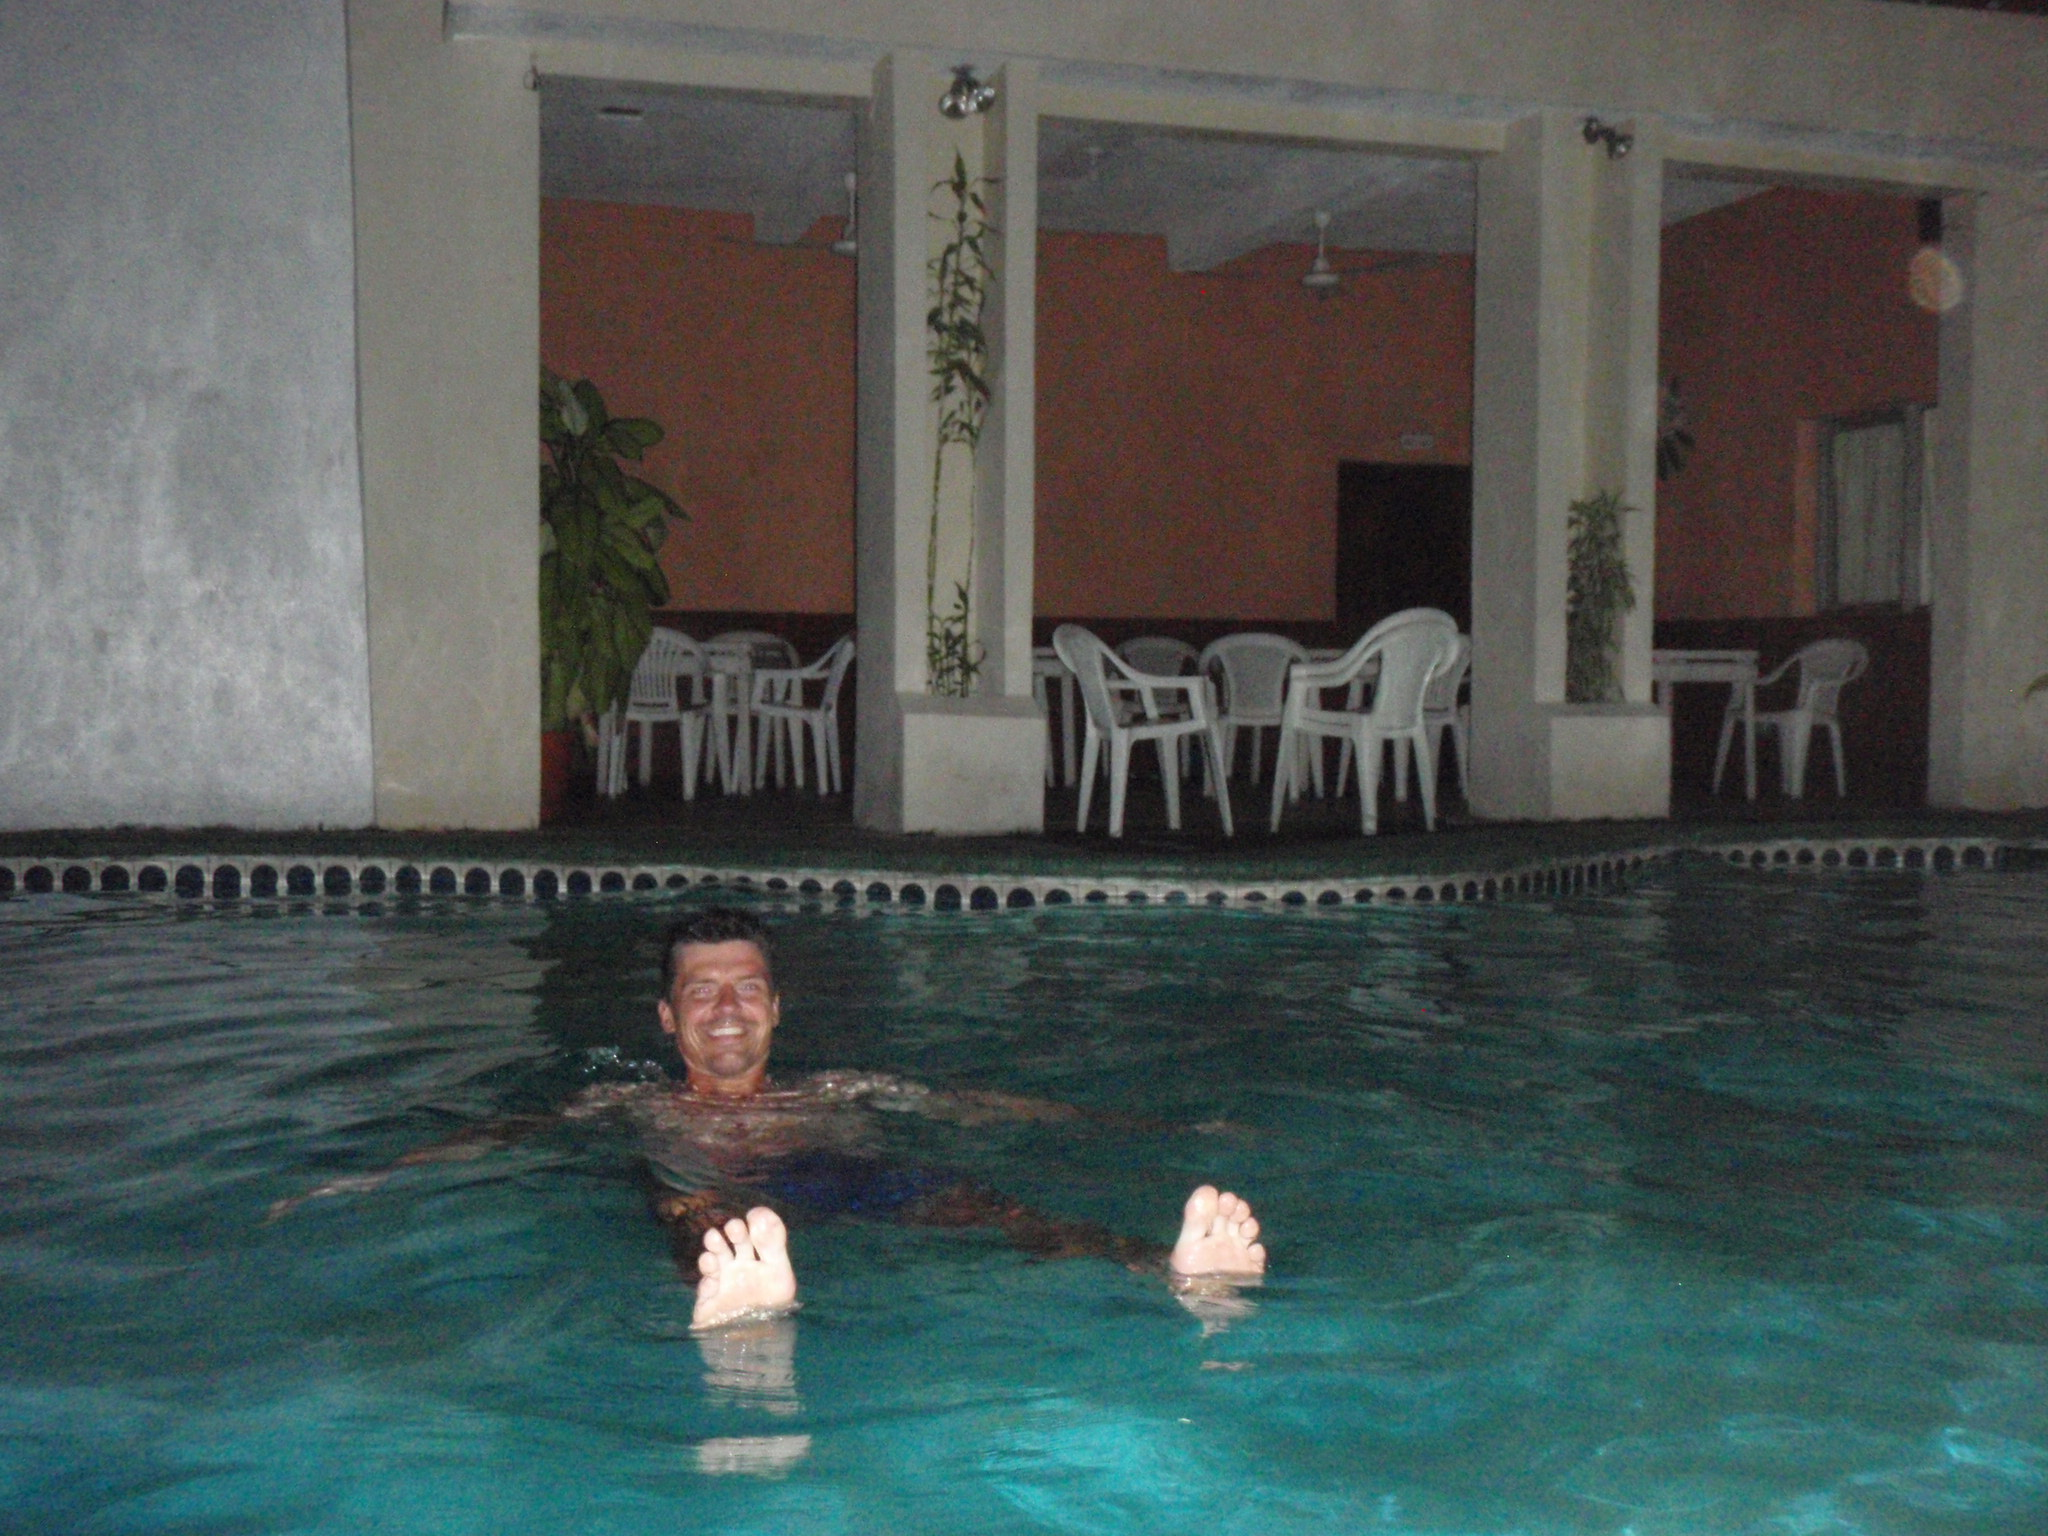 Cooling off in the hotel pool after a long, hot day on the bike